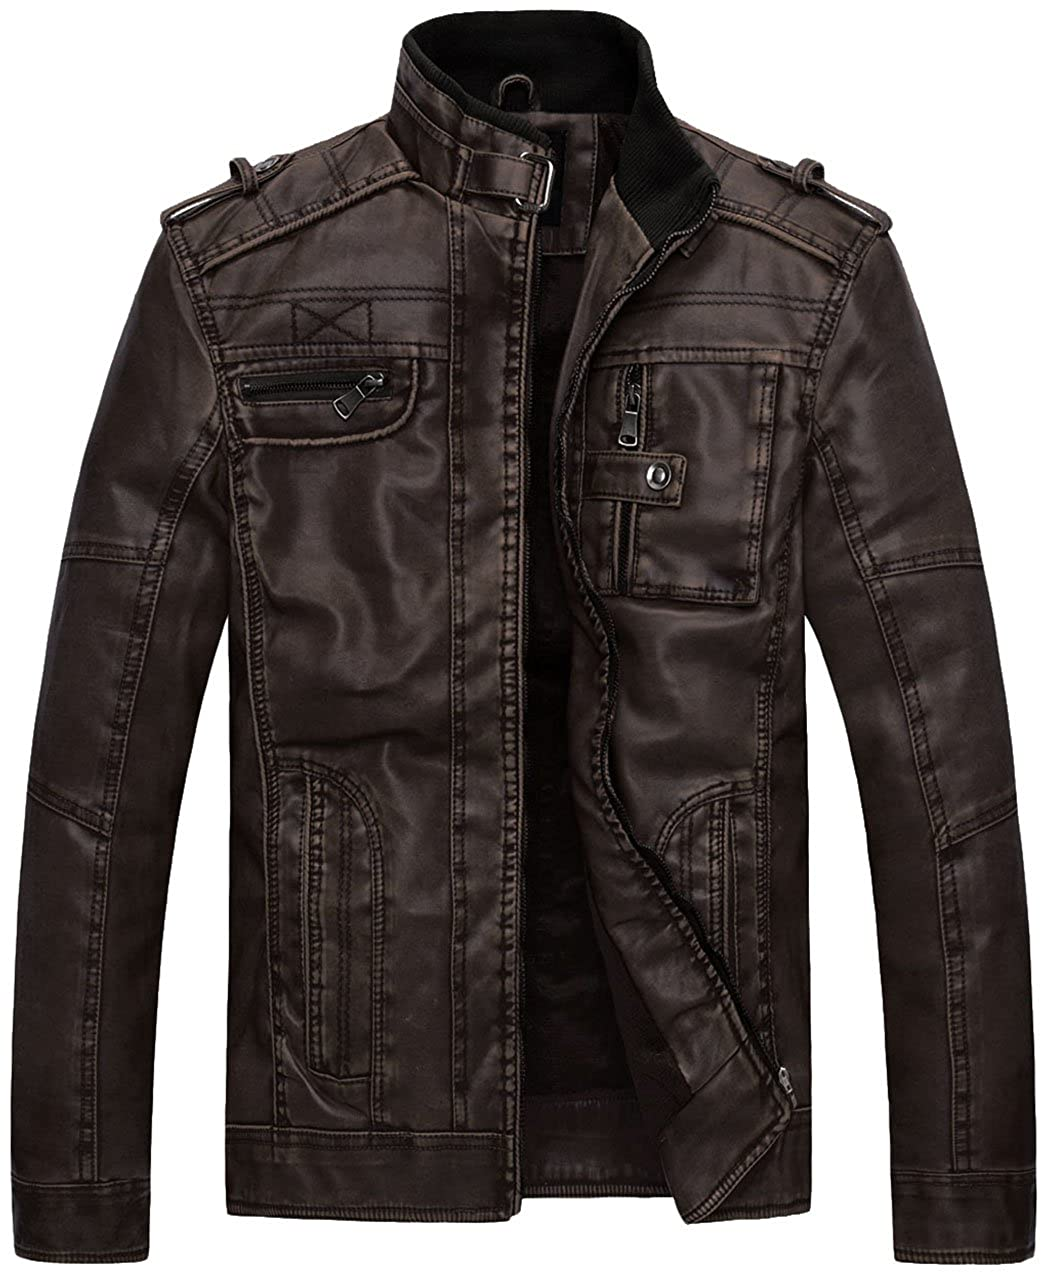 Mens Black Quality 4 Pocket Leather Motorcycle Biker Classic Waistcoat 600-002 Year-End Bargain Sale Vests